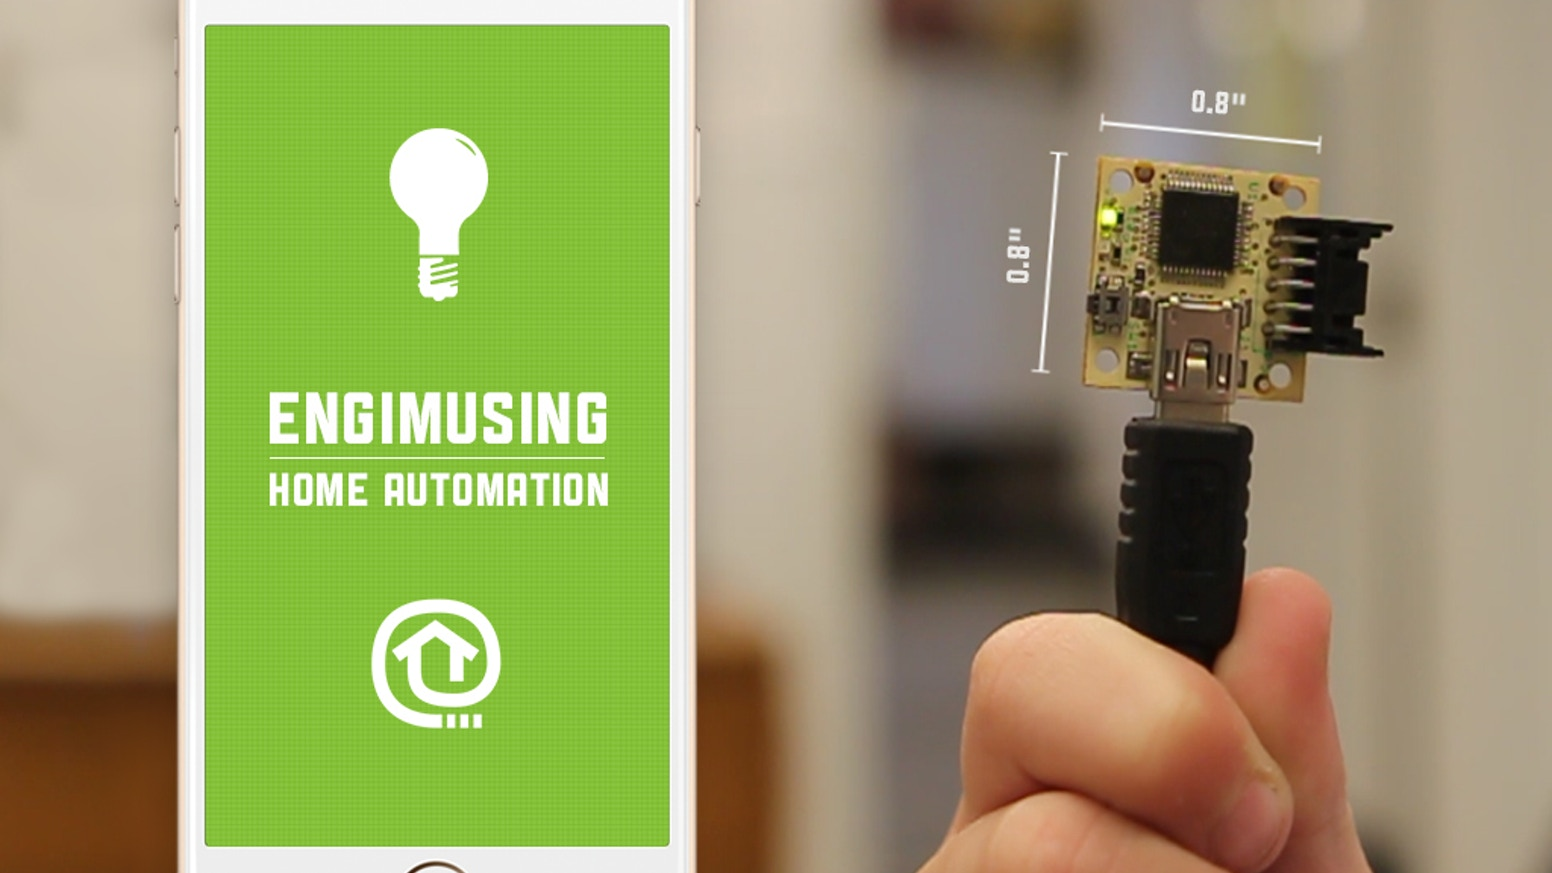 diy home automation open modules for your smart home by engimusing kickstarter. Black Bedroom Furniture Sets. Home Design Ideas